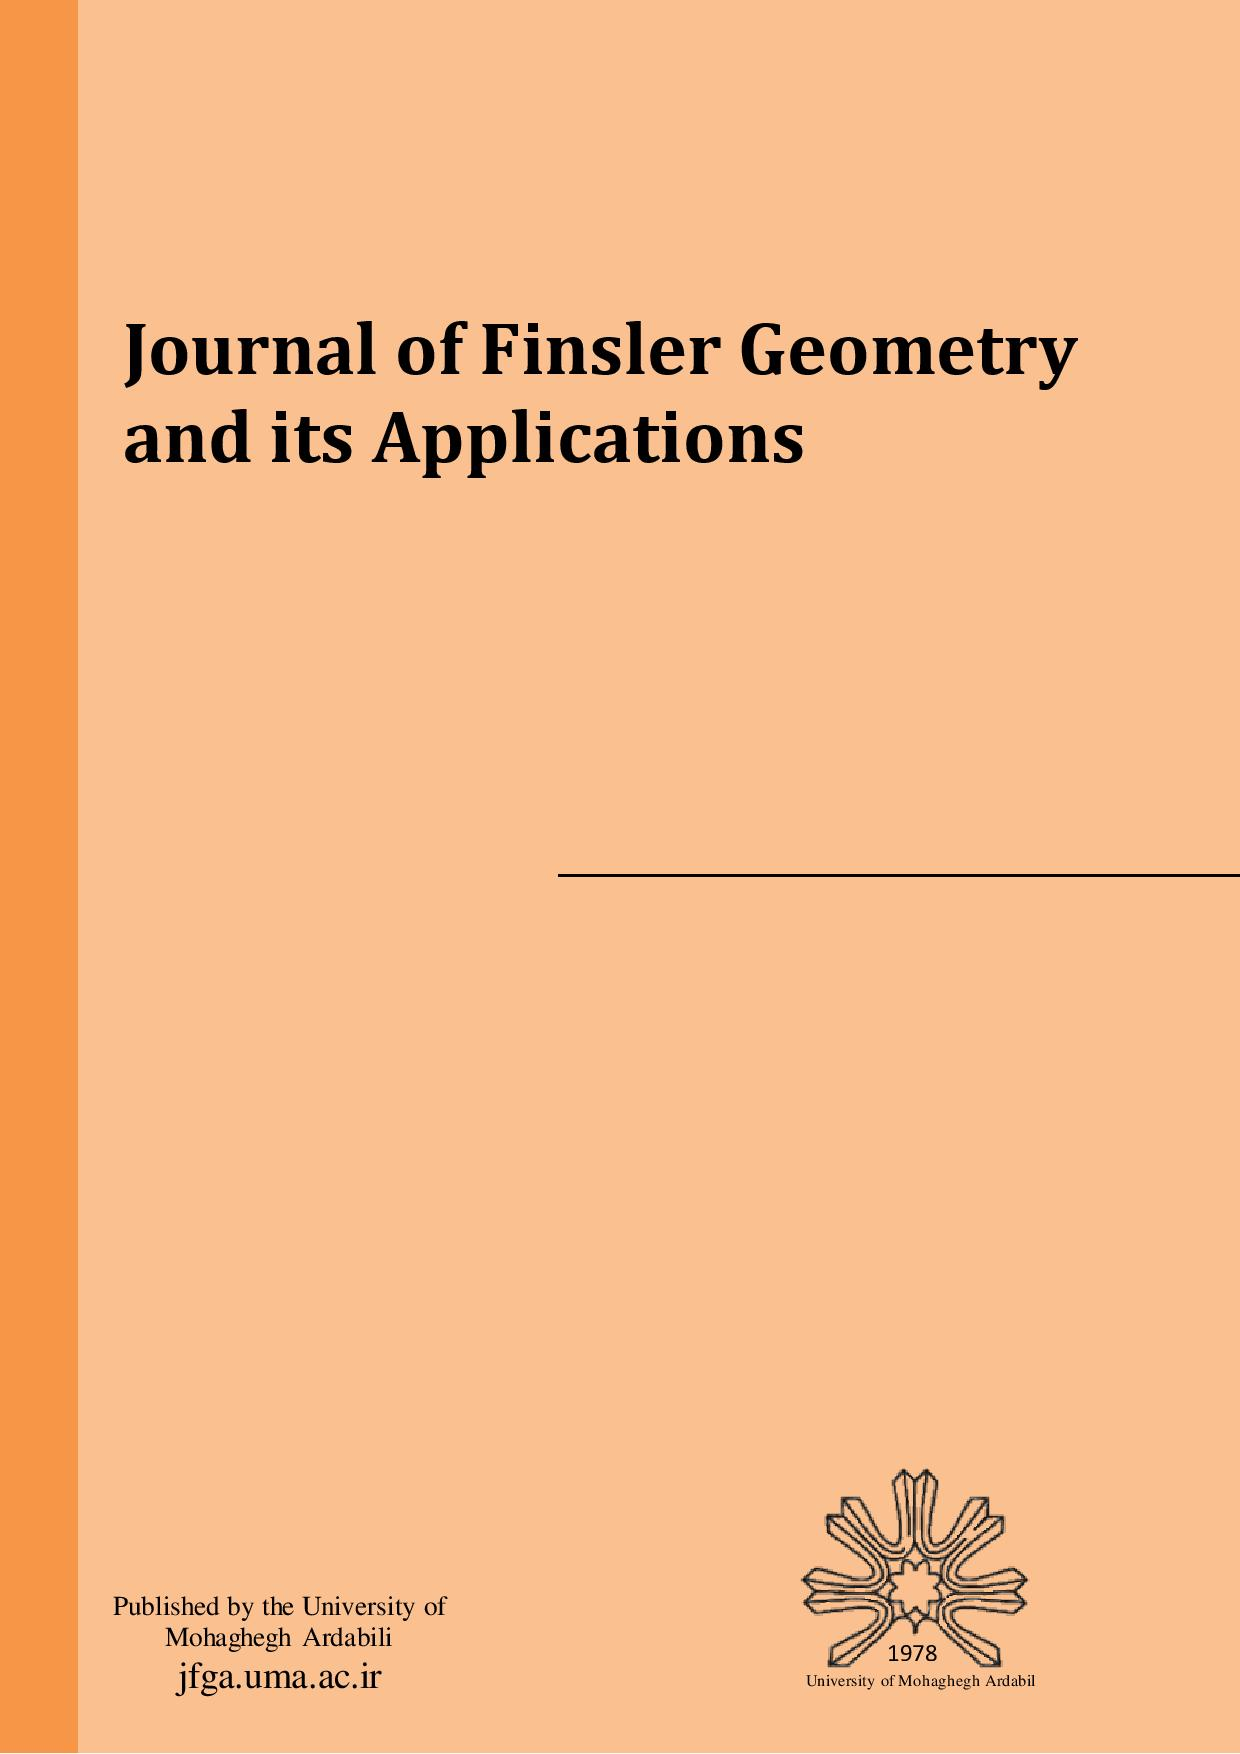 Journal of Finsler Geometry and its Applications